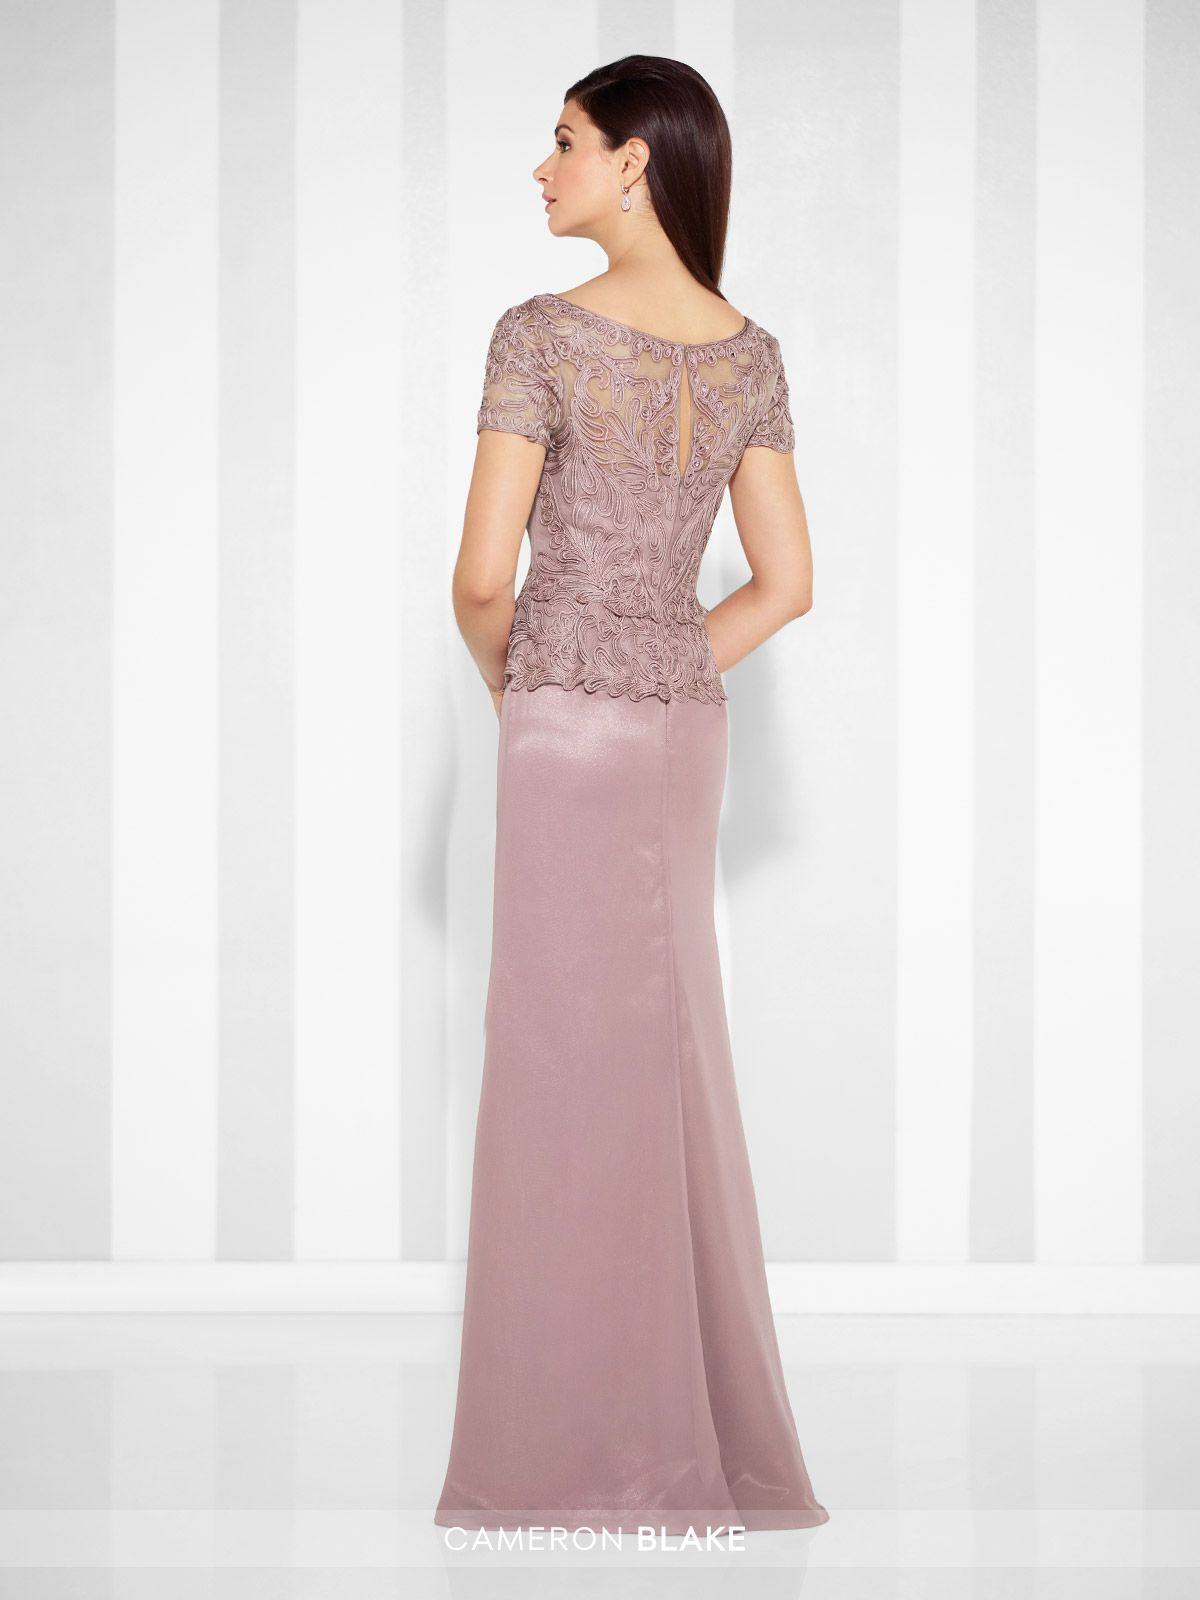 de1585b0d07a Cameron Blake - 117609 - Chiffon and ribbon work sheath gown with short  sleeves, illusion scoop neckline, ribbon work bodice with peplum at natural  waist, ...